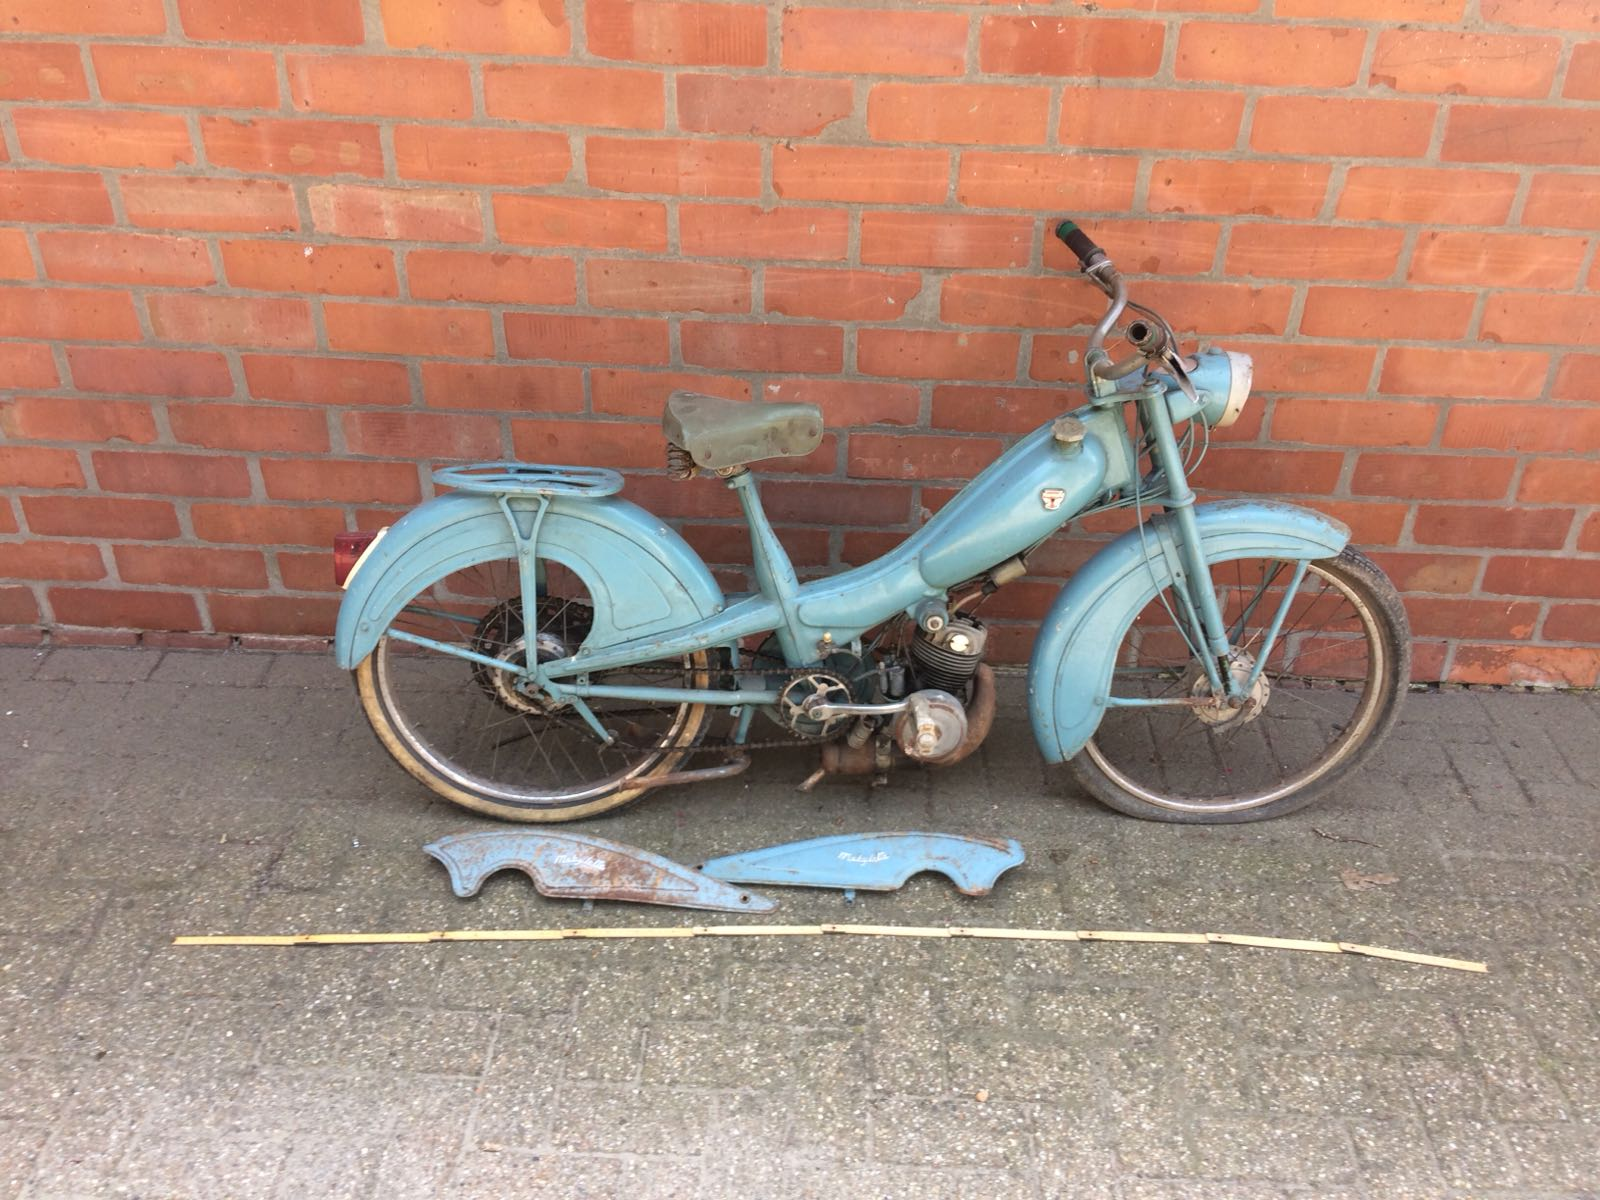 Motobecanne Mobylette 1950's 50cc moped. Lot 1012. Estimate £300-£600